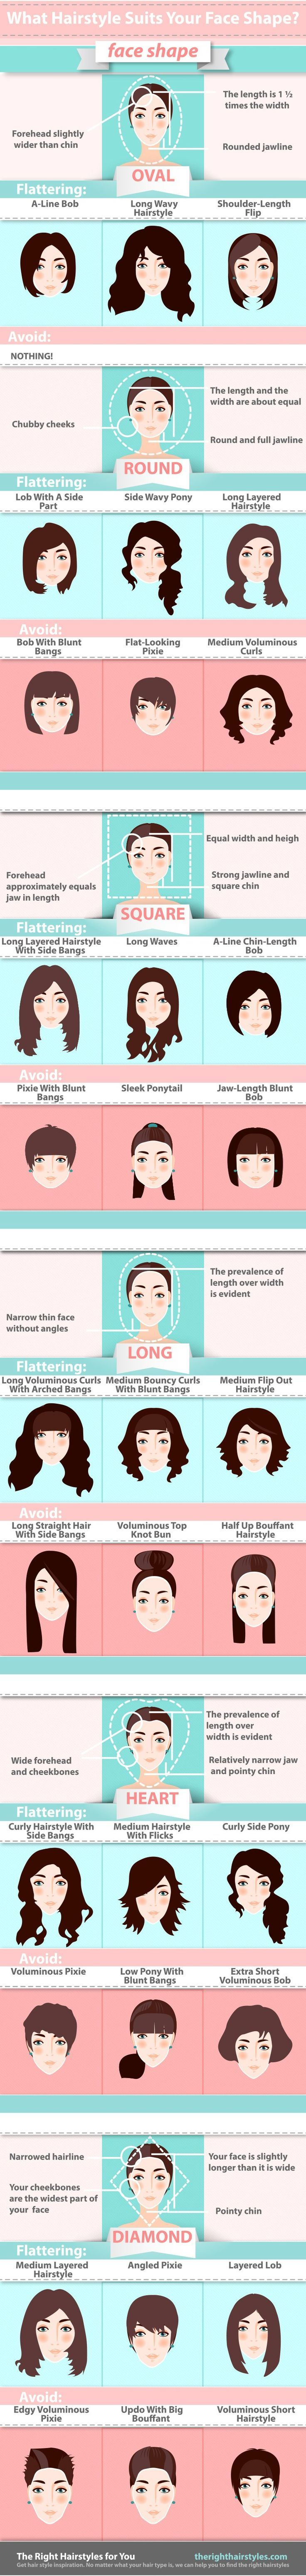 Makeup tutorials makeup tips guide the perfect hairstyle for your face shape best beauty Fashion makeup and style tips